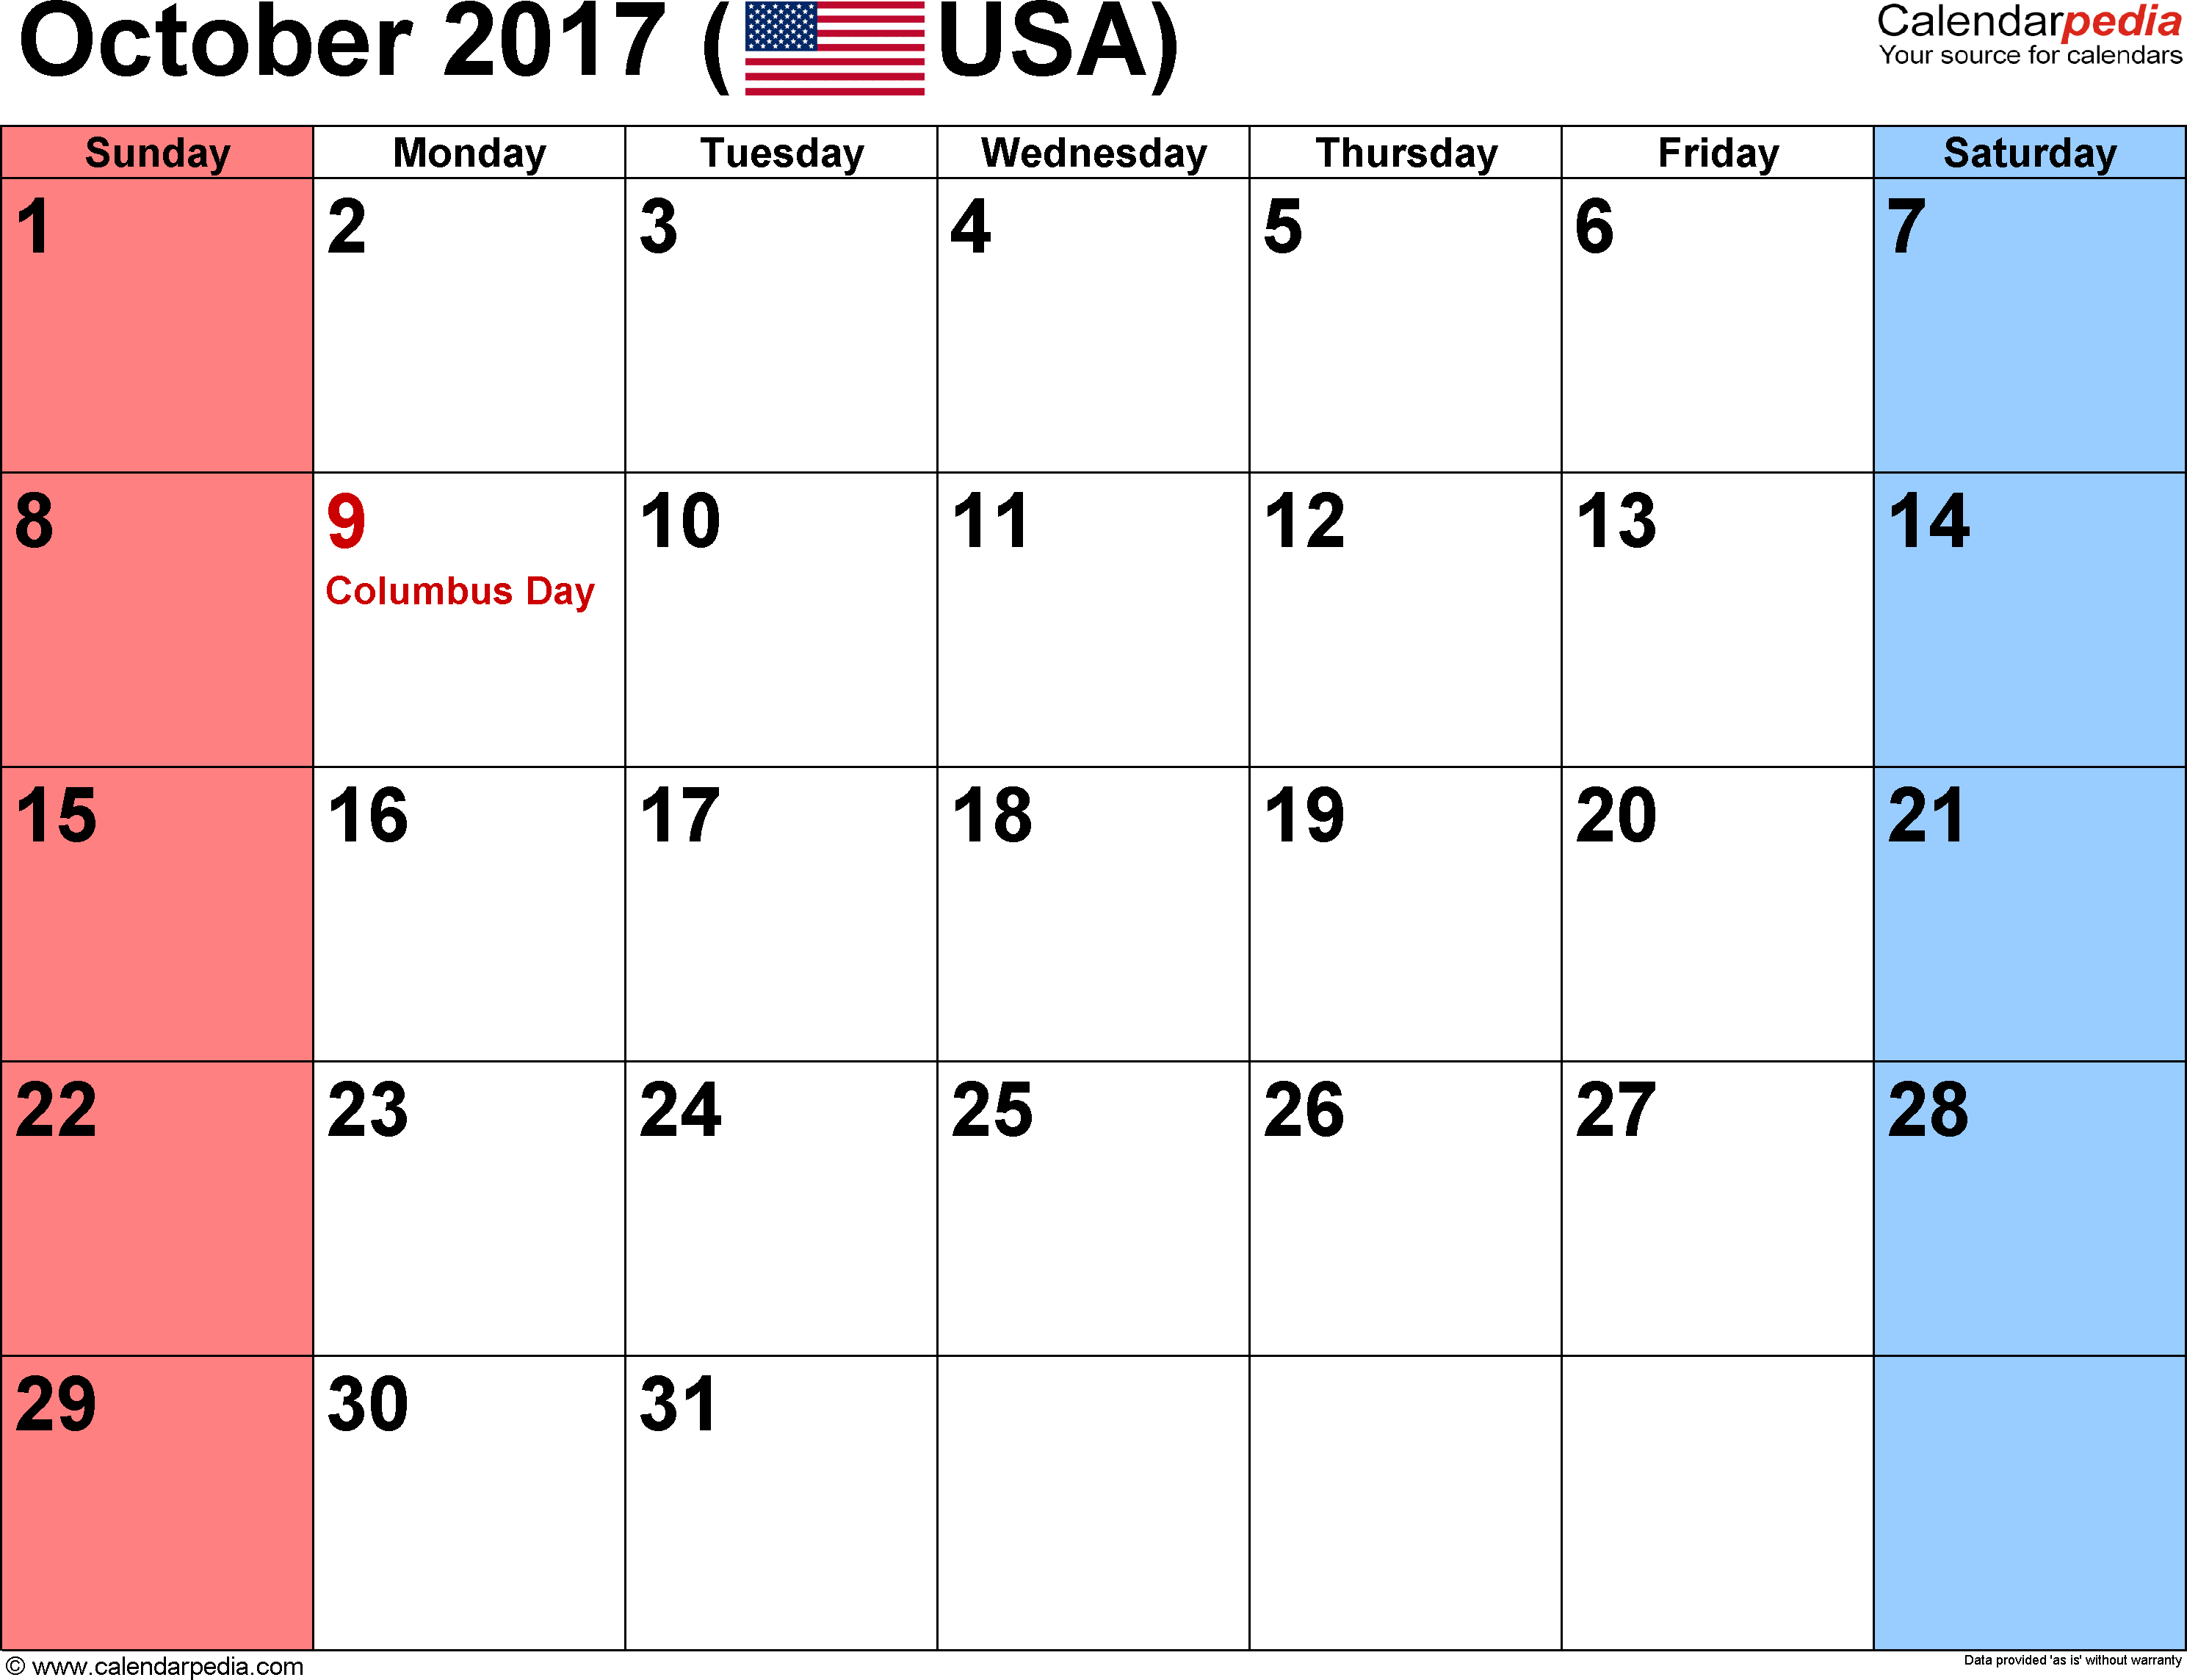 Free Printable October 2017 Calendar - waterproofpaper.com